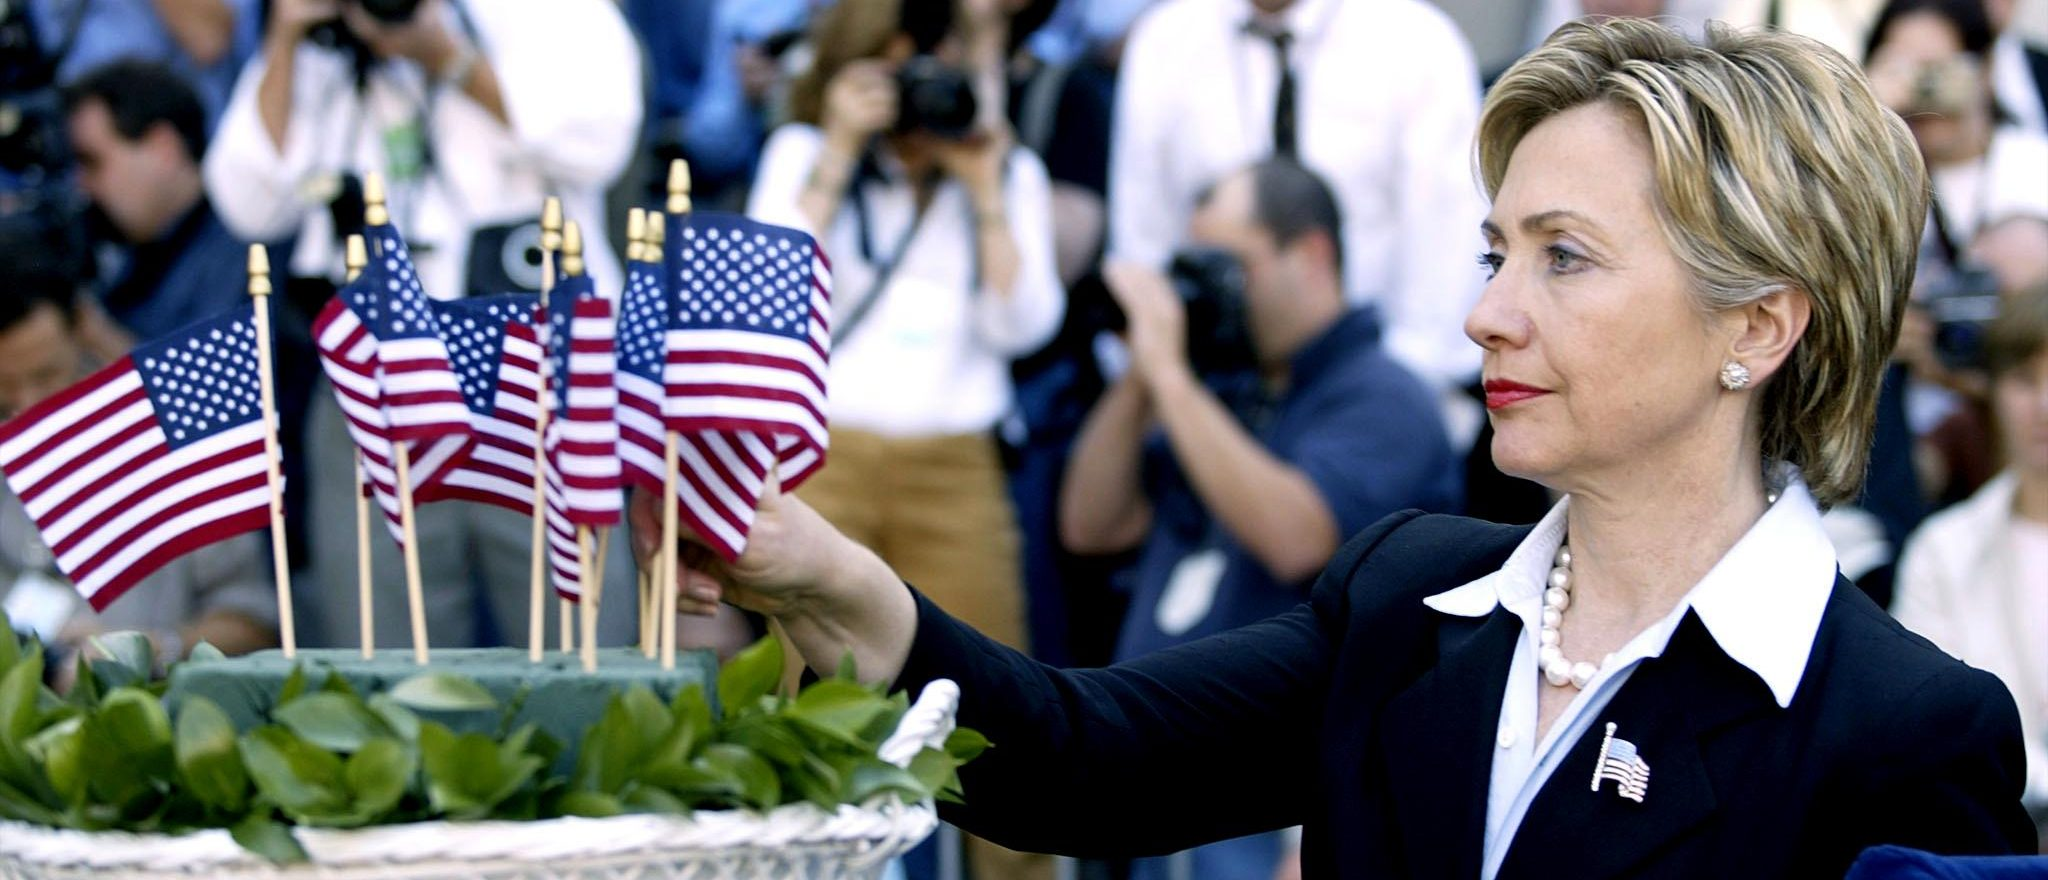 Hillary Clinton places a flag during a ceremony at Ground Zero of the World Trade Center site during a ceremony in New York, 06 September 2002. (Getty Images)